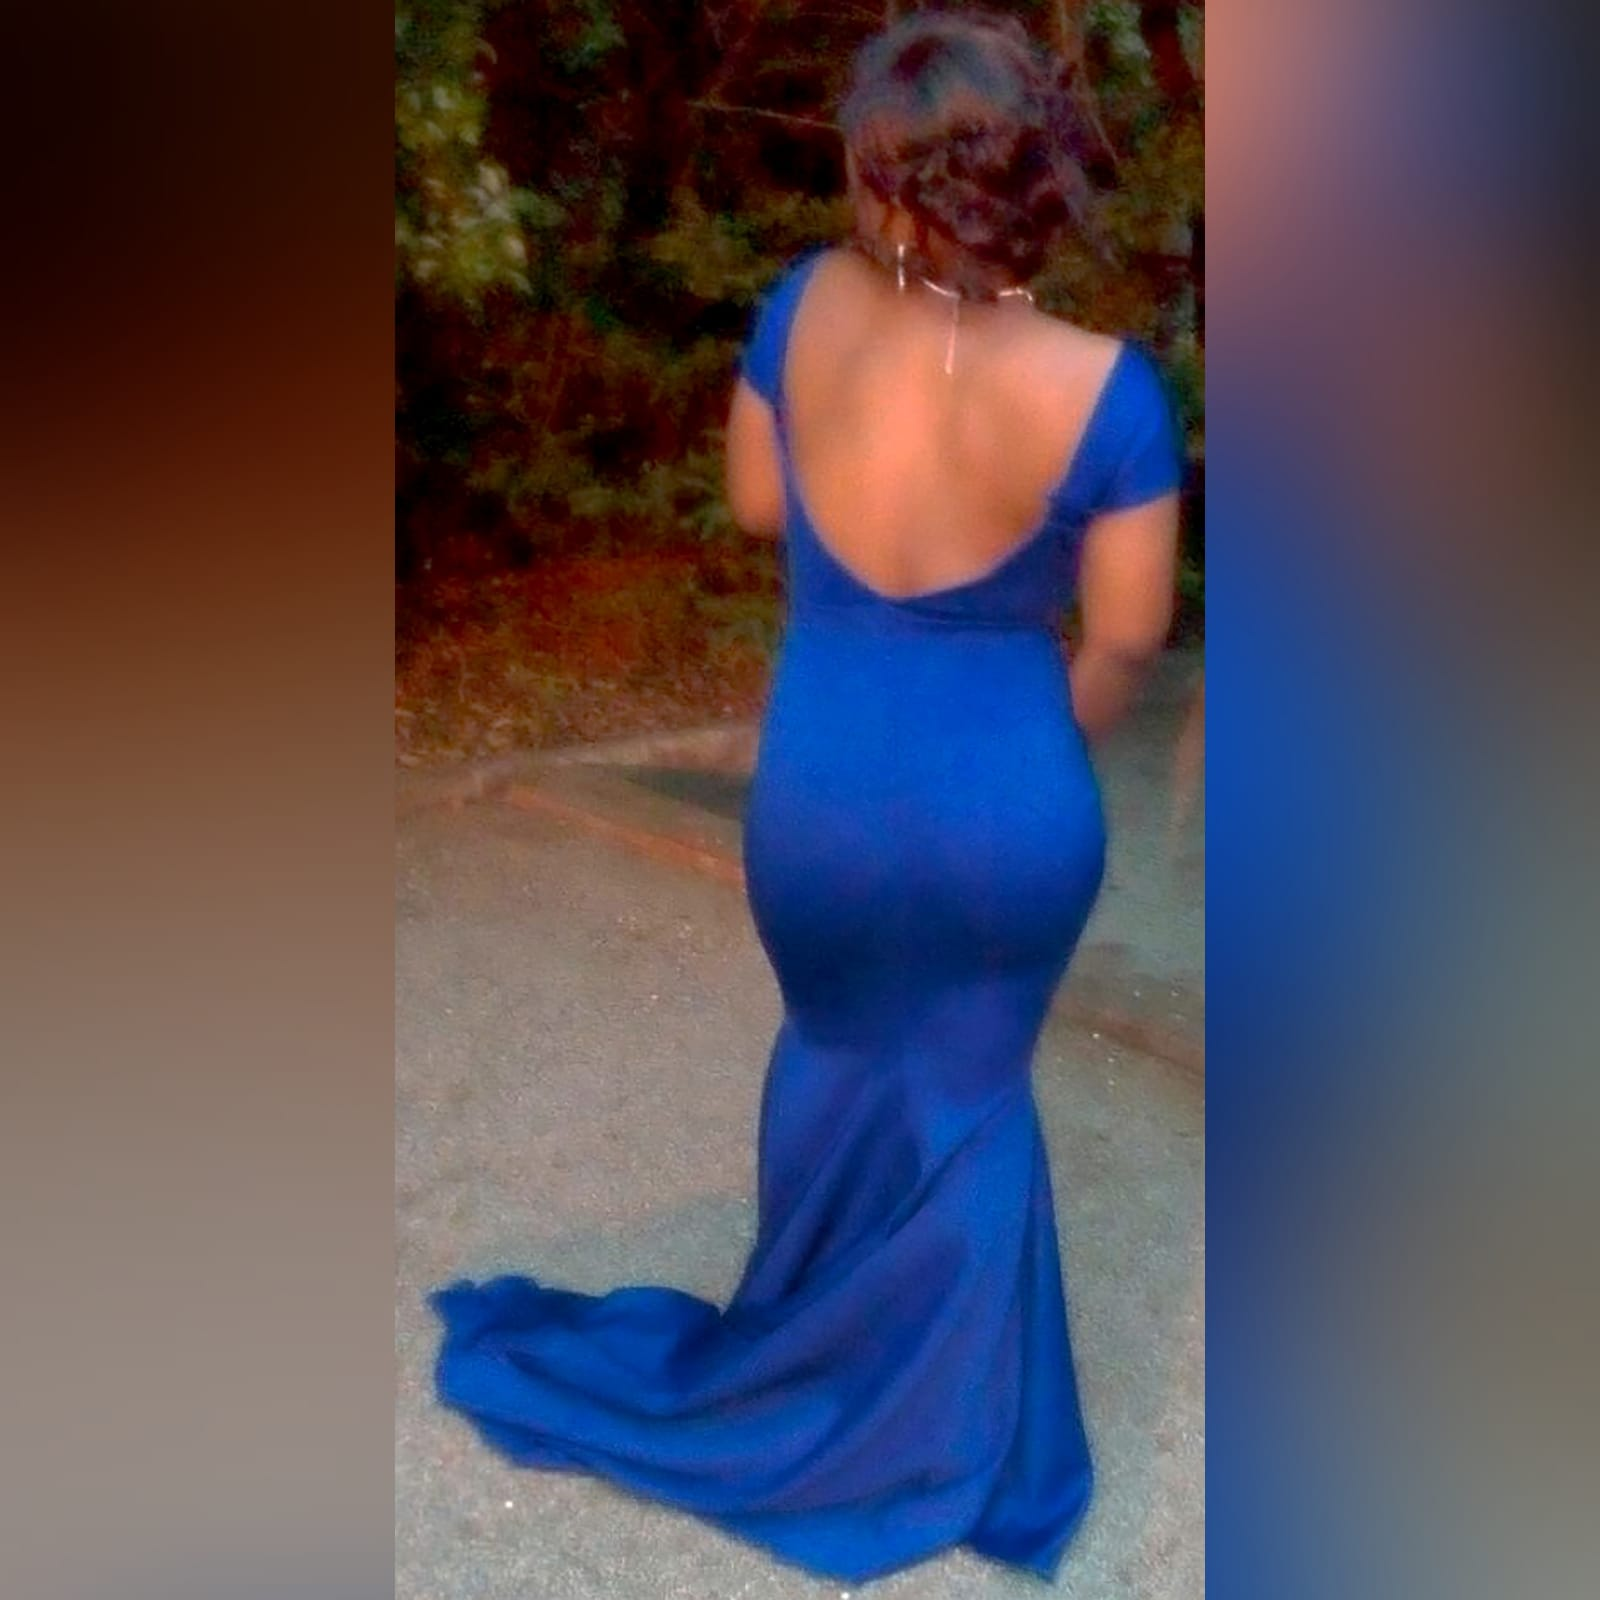 Royal blue off shoulder soft mermaid matric dance dress 6 royal blue off shoulder soft mermaid prom dress with a cross bust strap creating off shoulder sleeves and a rounded open back, with a train.